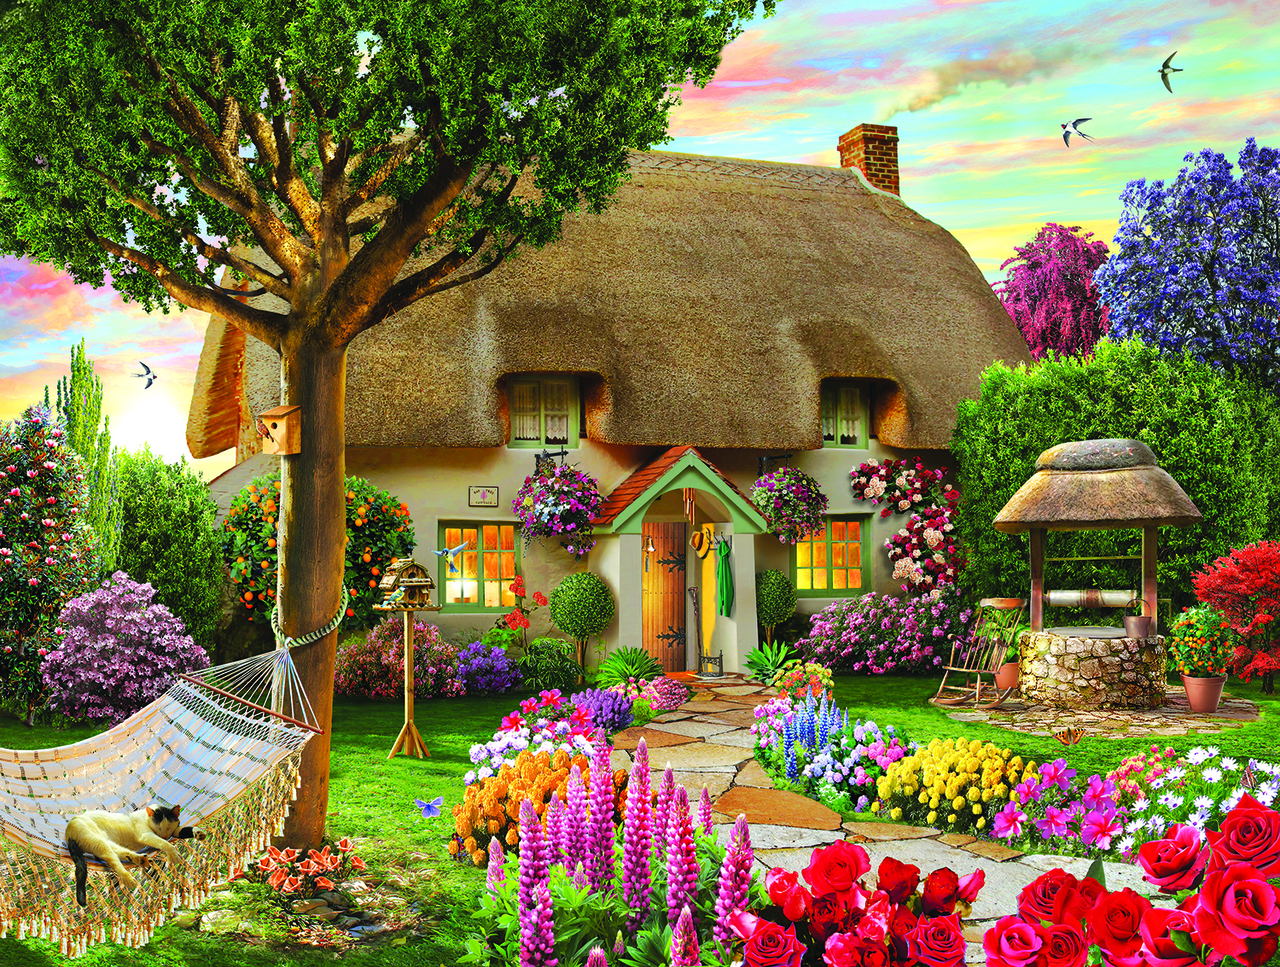 sunsout-adrian-cherterman-wishing-well-cottage-1000-teile-puzzle-sunsout-48624